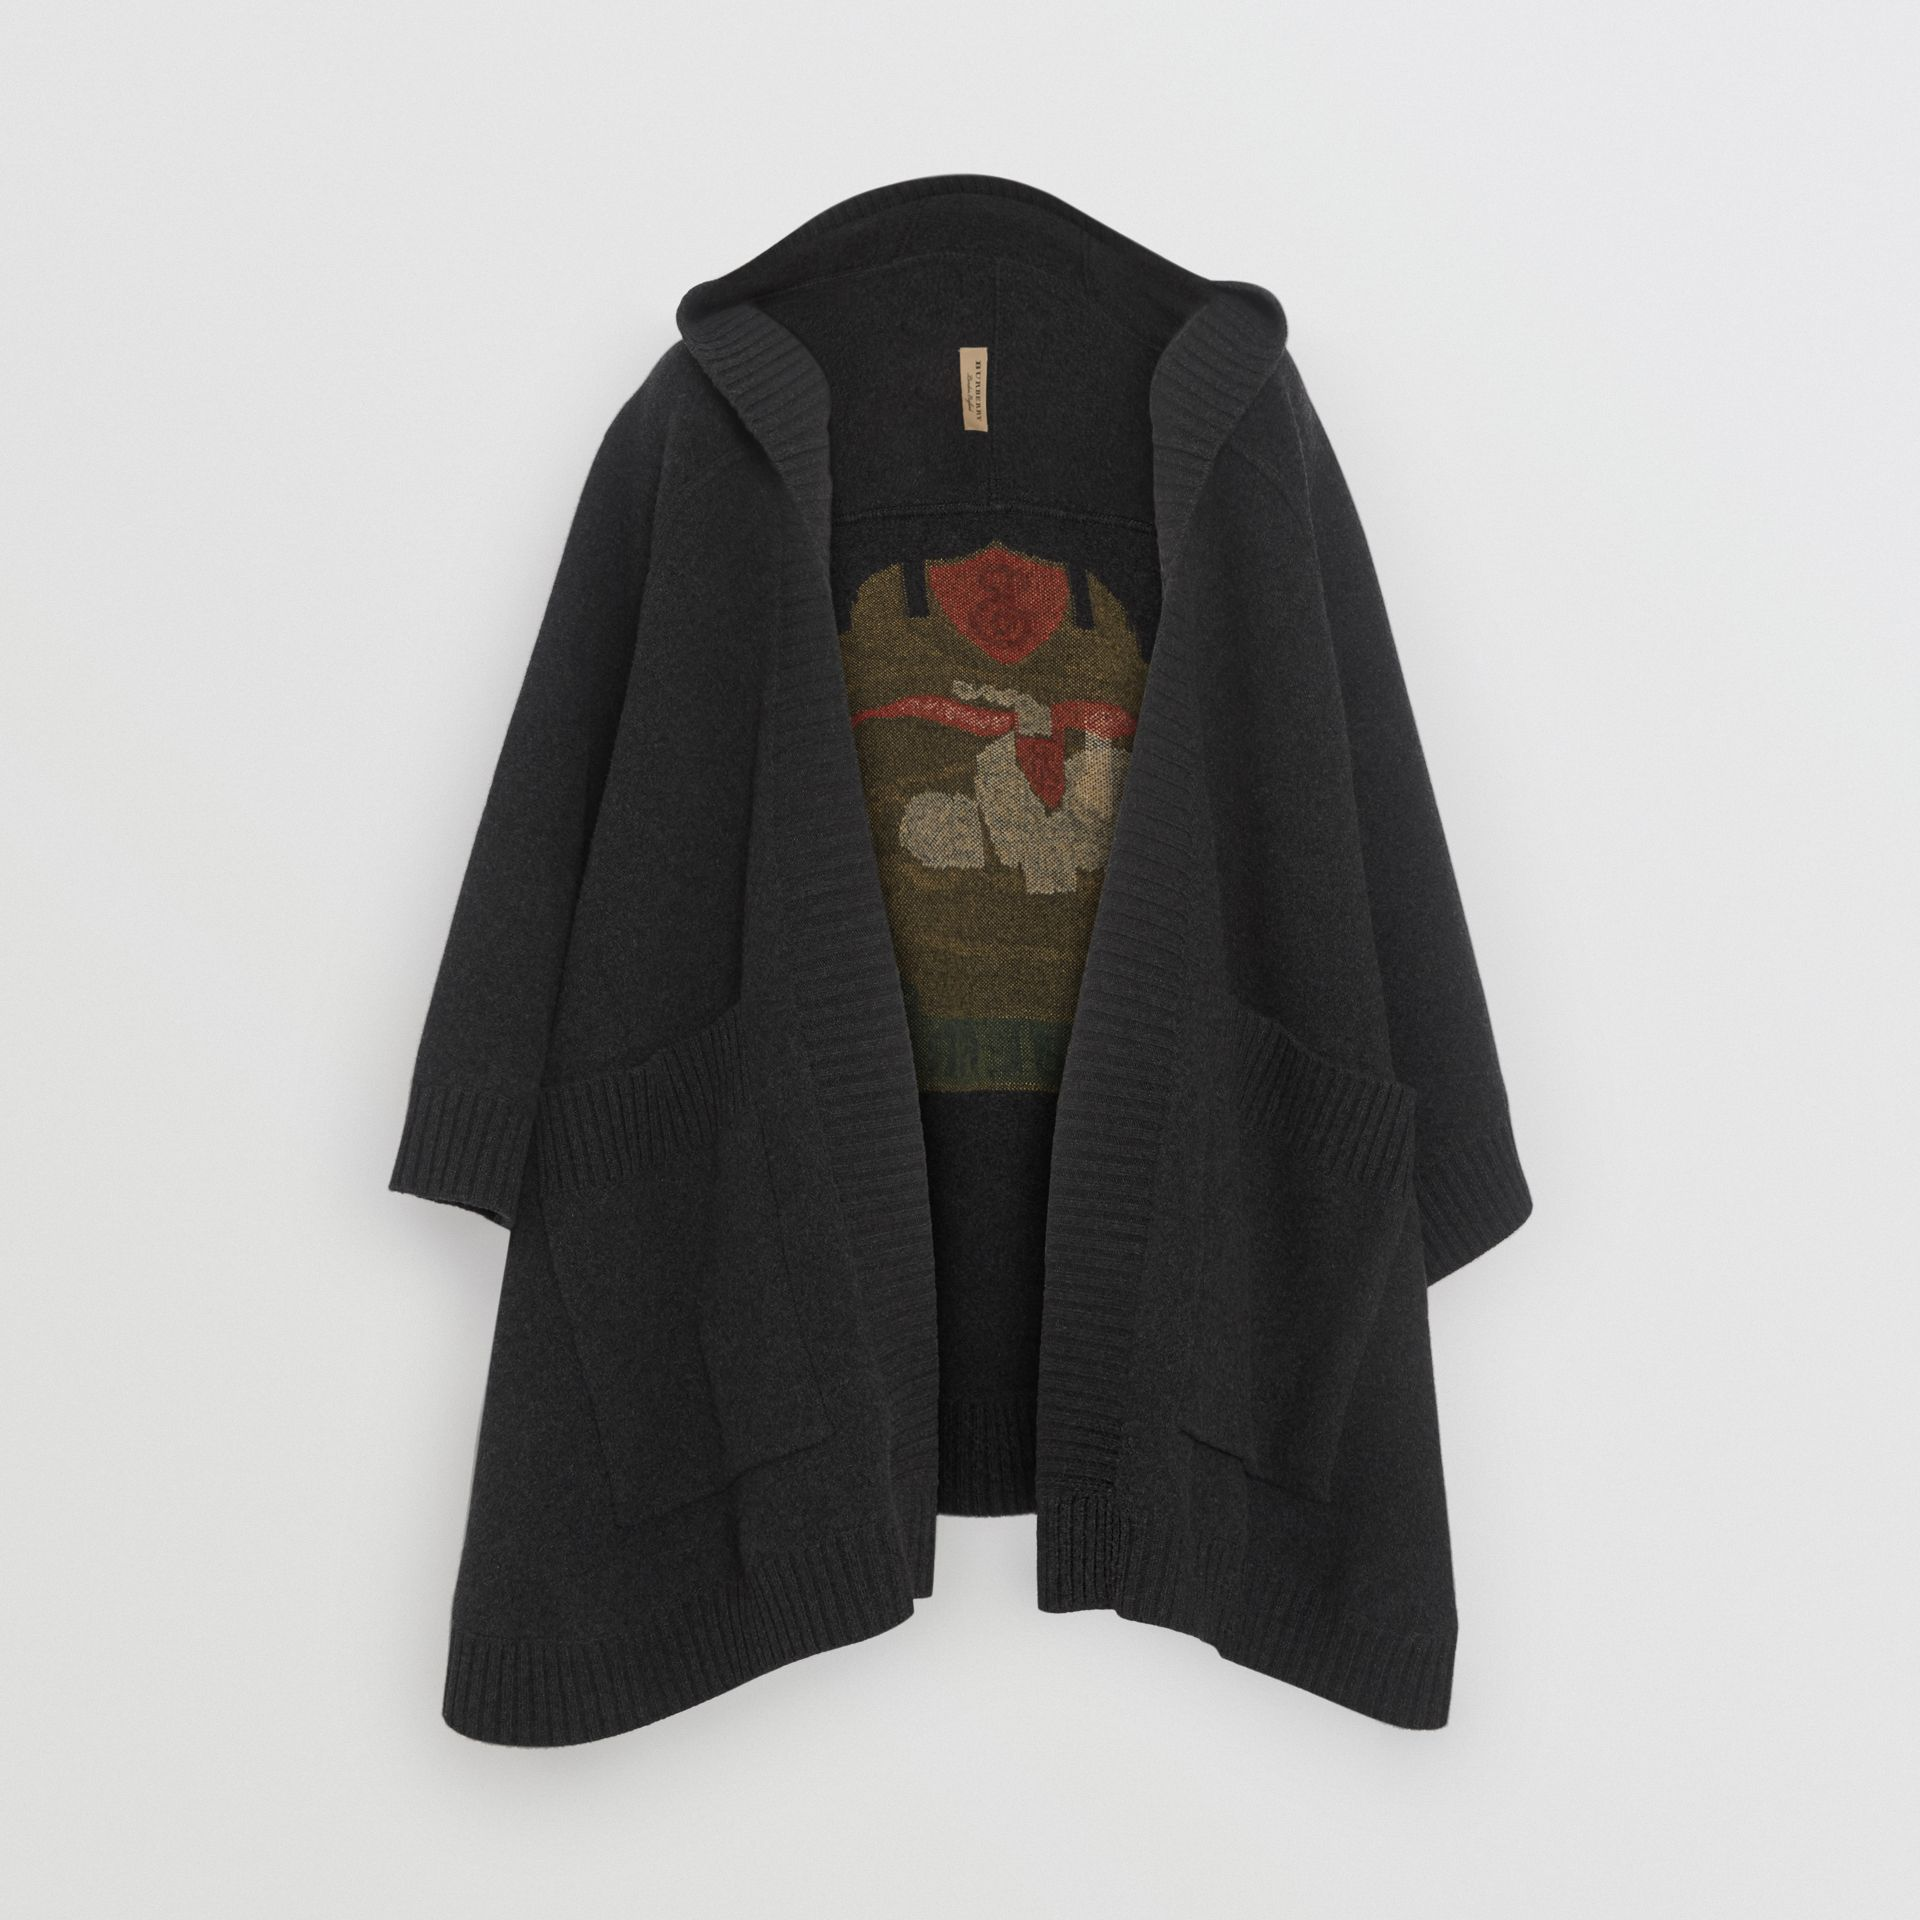 Crest Wool Blend Jacquard Hooded Cape in Charcoal - Women | Burberry - gallery image 3